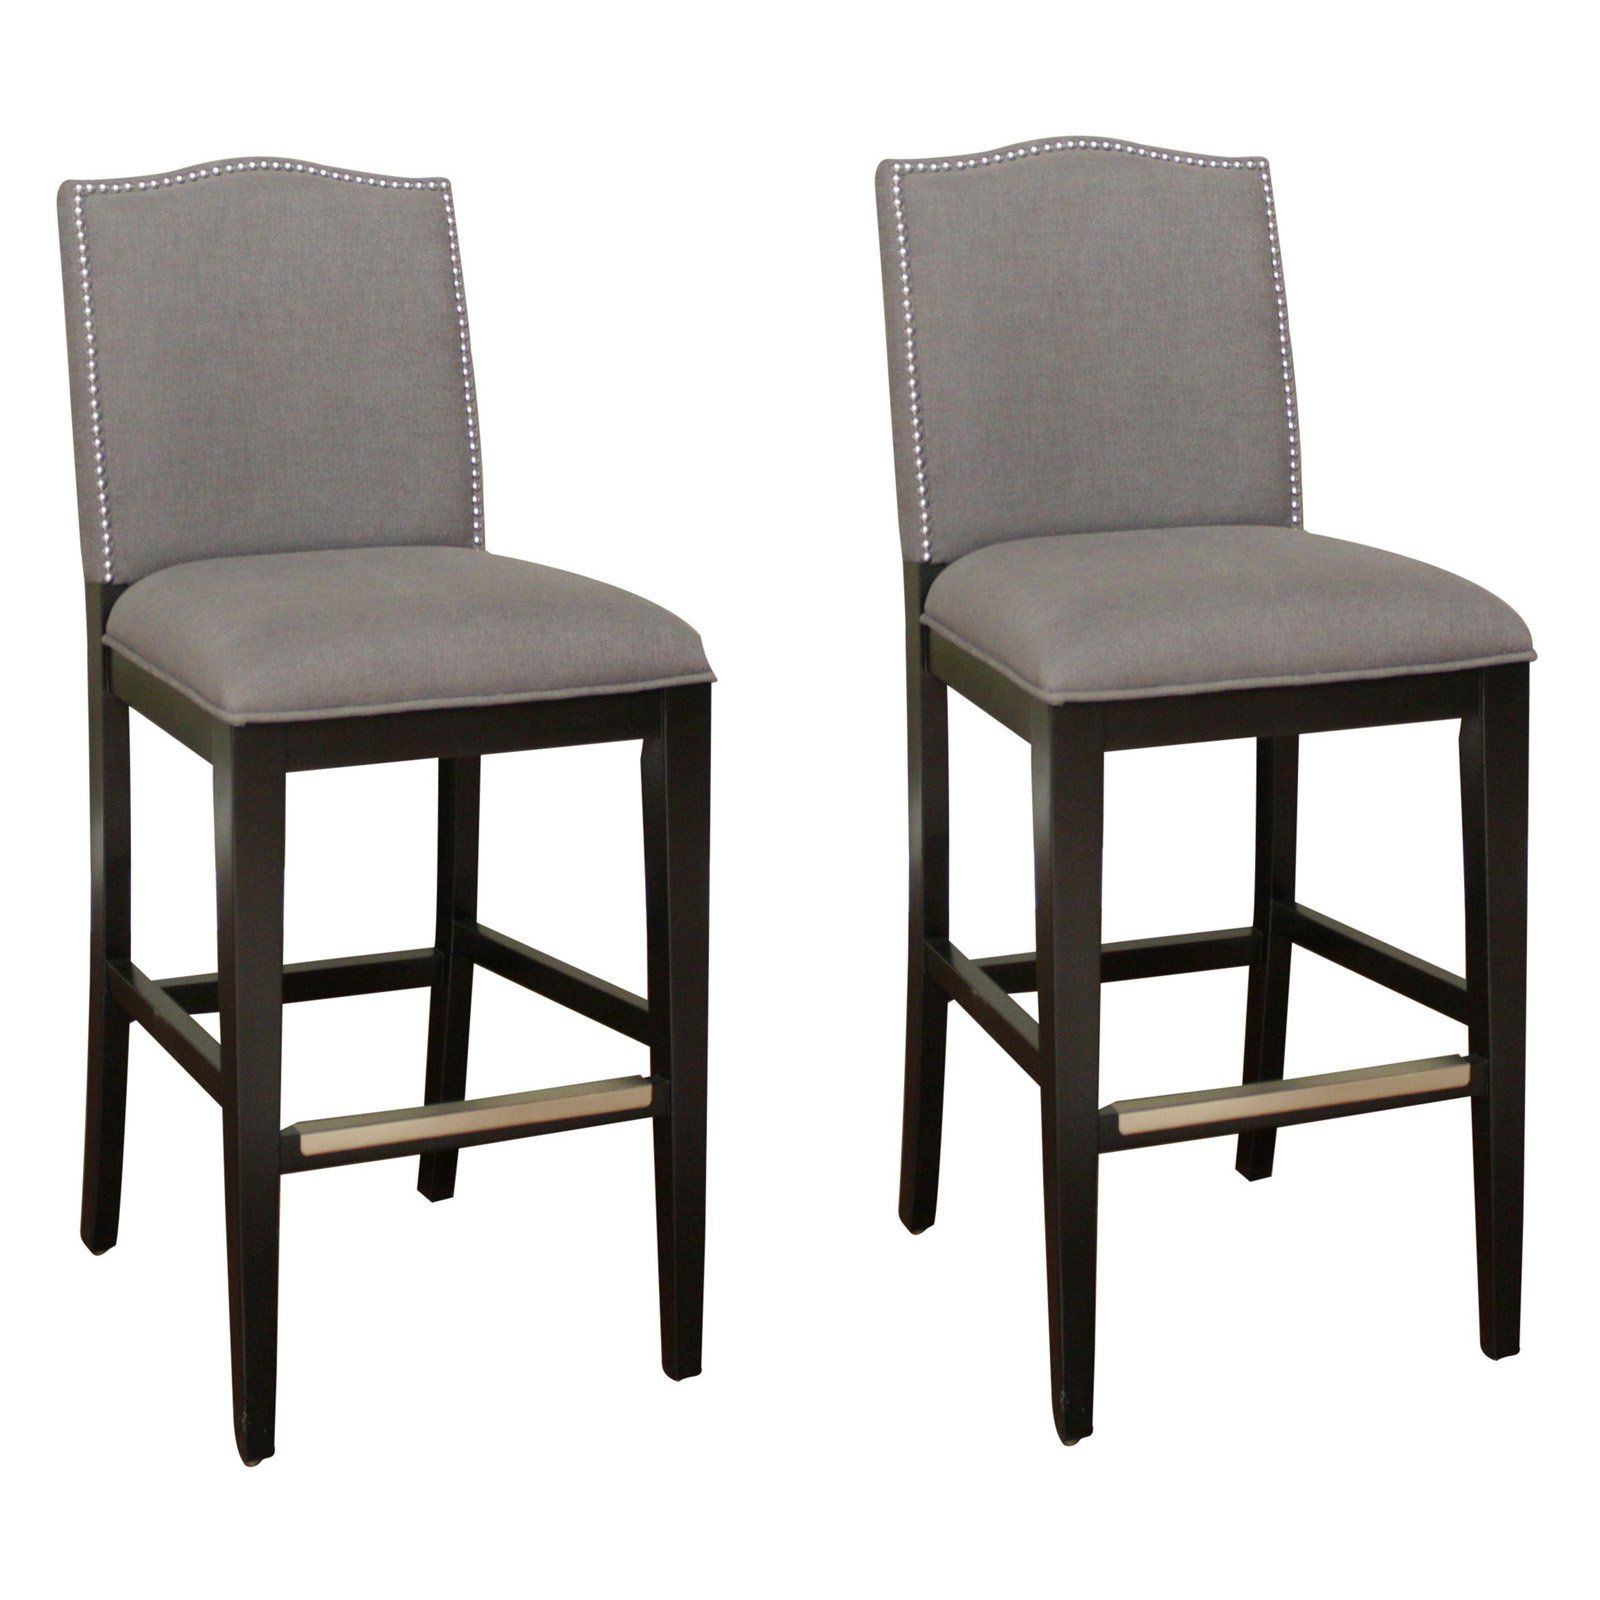 Ahb Chase Tall Bar Stool Black With Smoke Linen Upholstery Set Of 2 739 9 Hayneedle